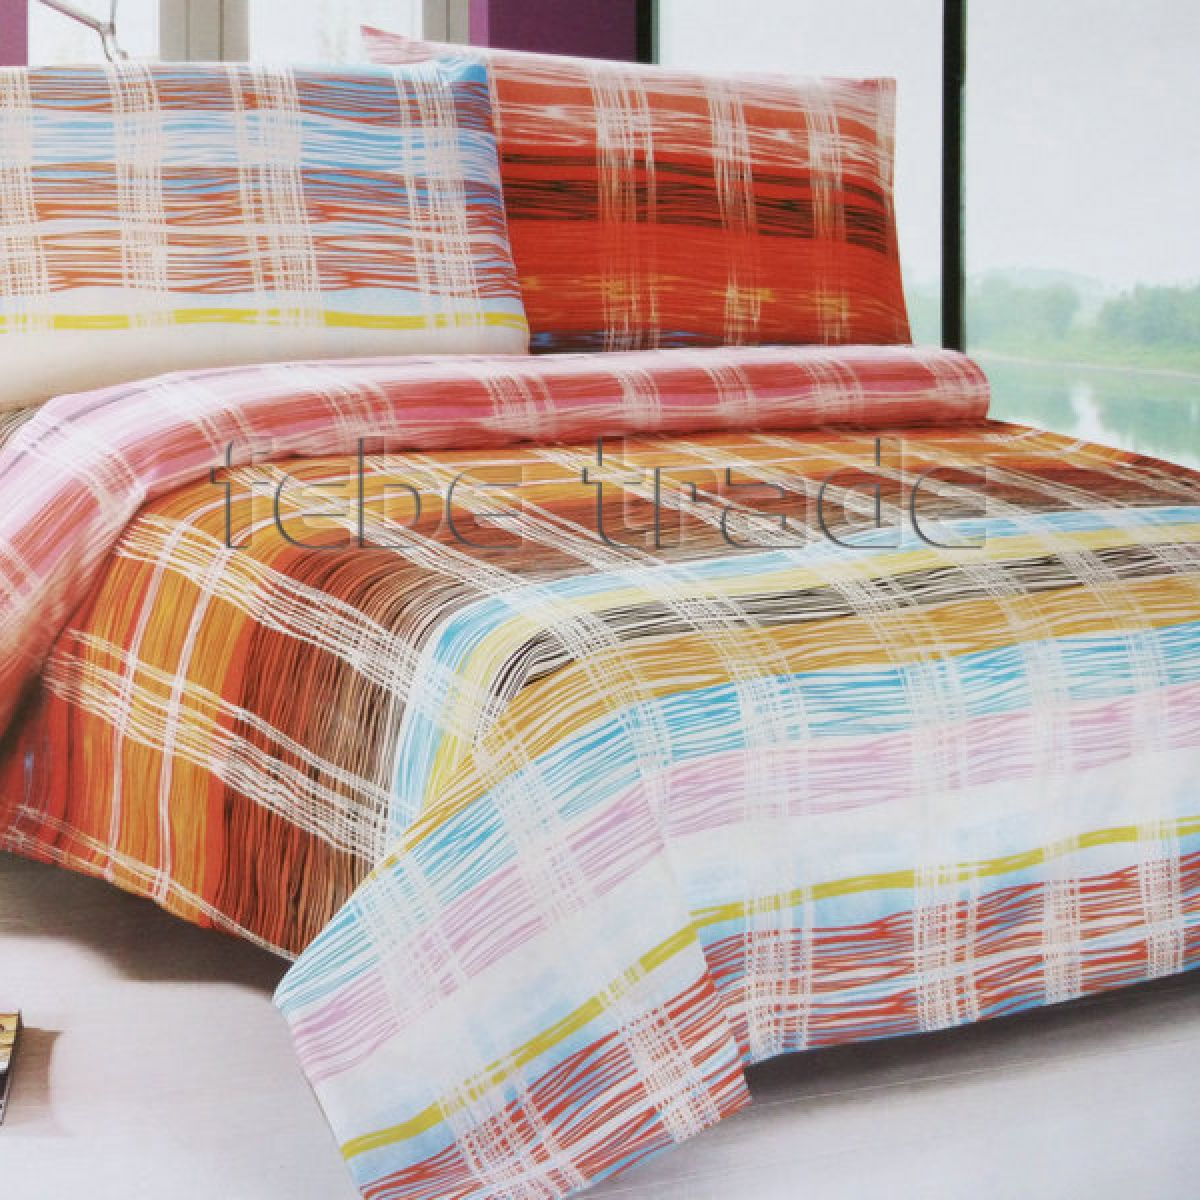 Cheap Beddings - TPR-481 - 160x200 cm - 4 pcs